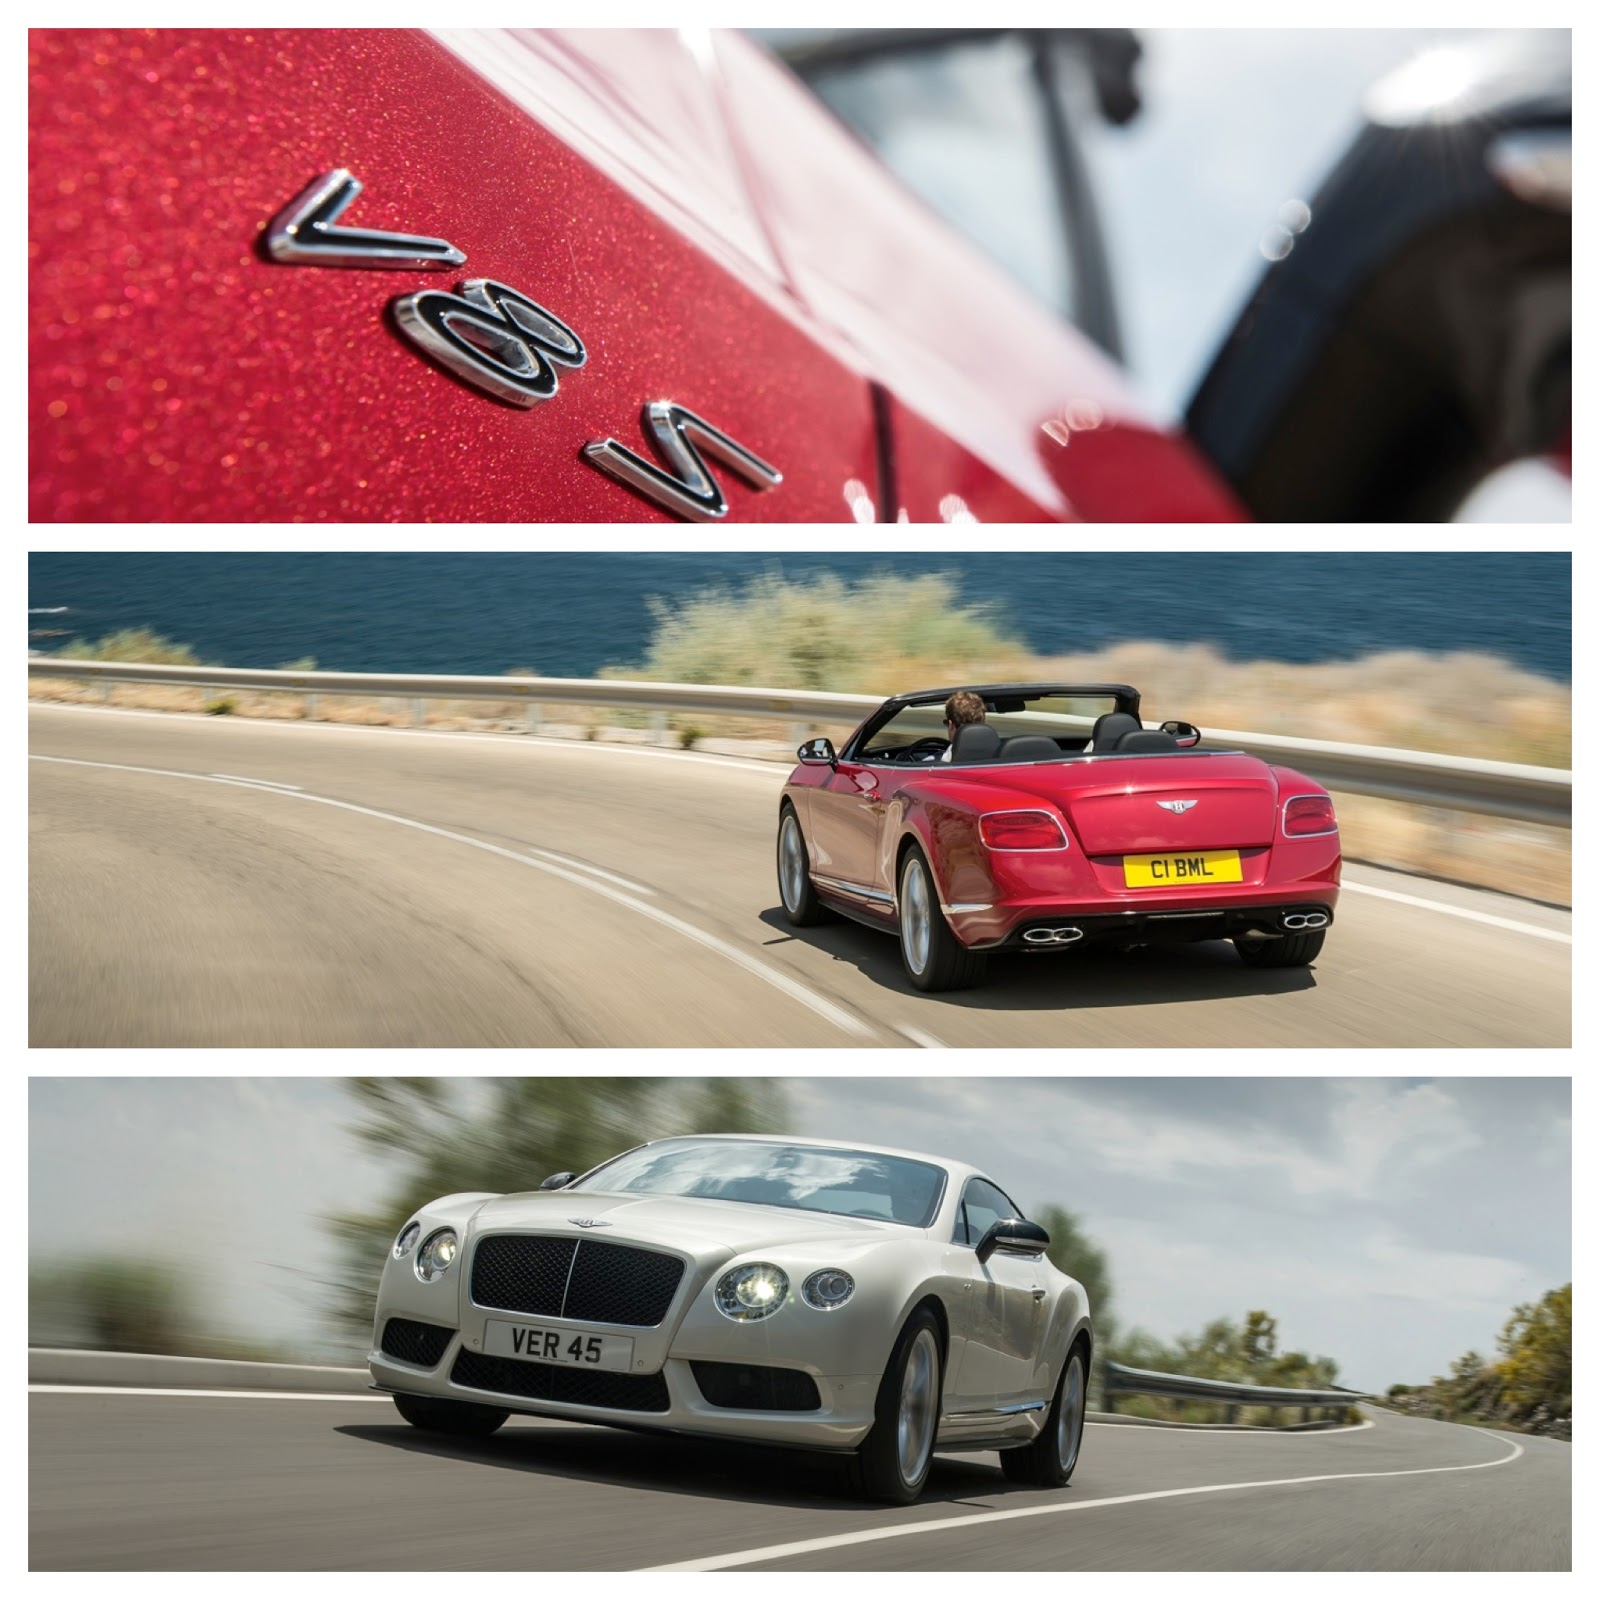 New Bentley Continental GT V8 S - Cars & Life